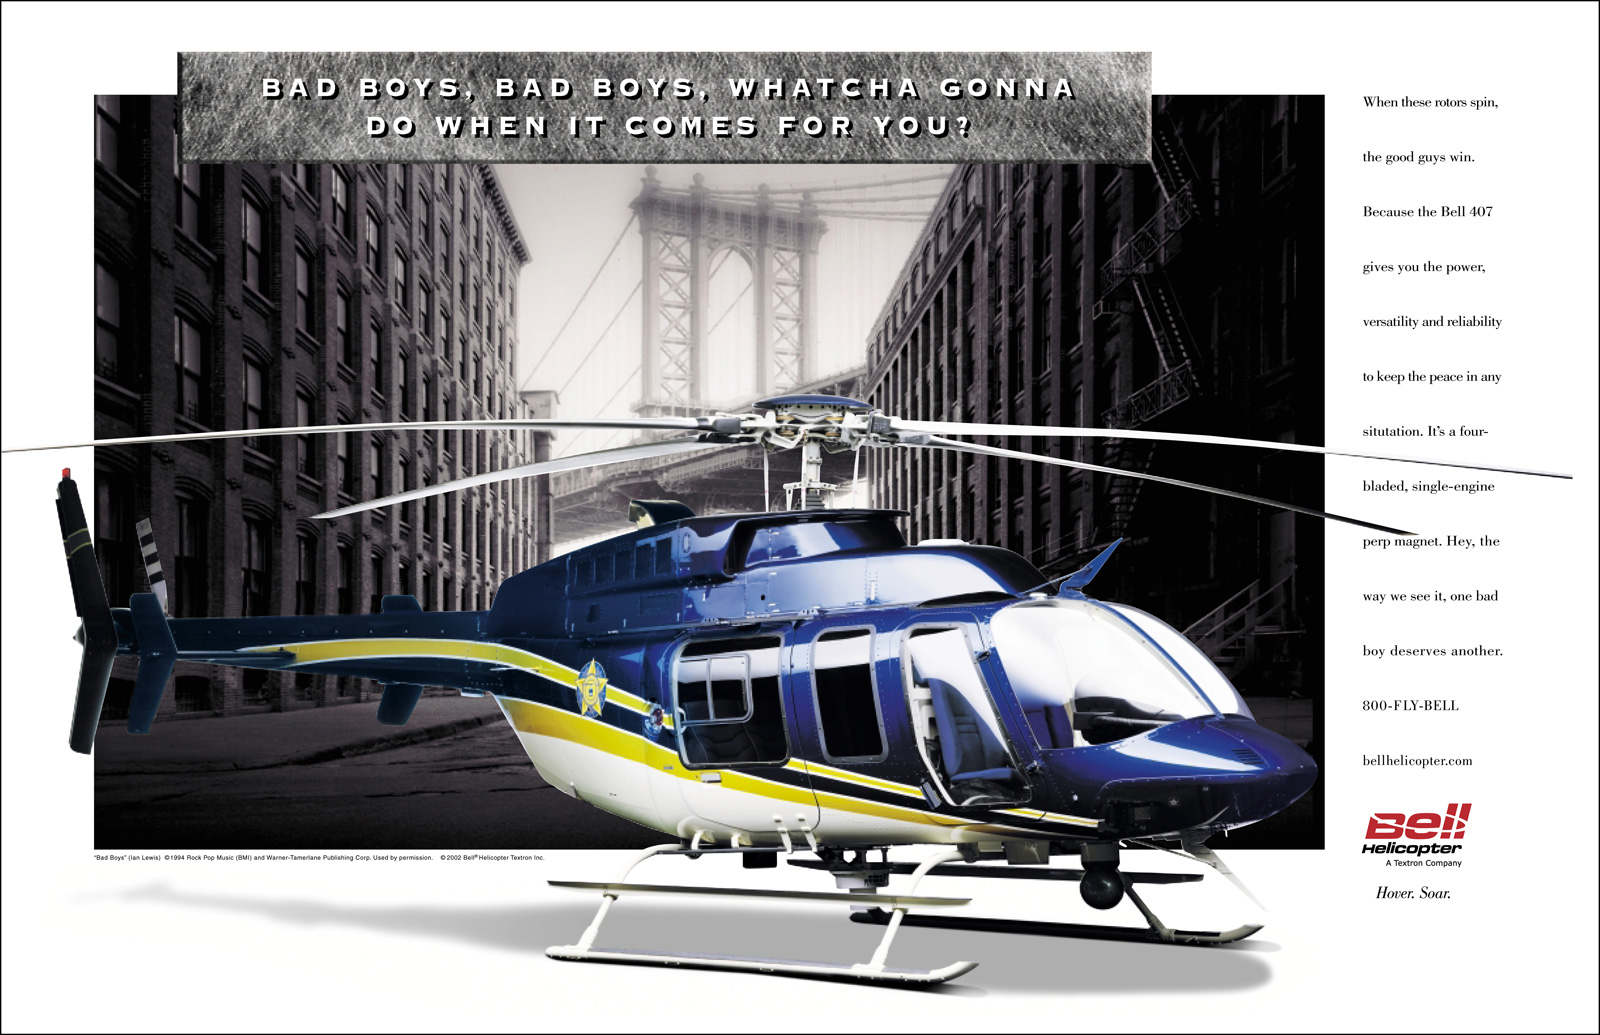 US Army Helicopter Names in Vietnam John Brennan